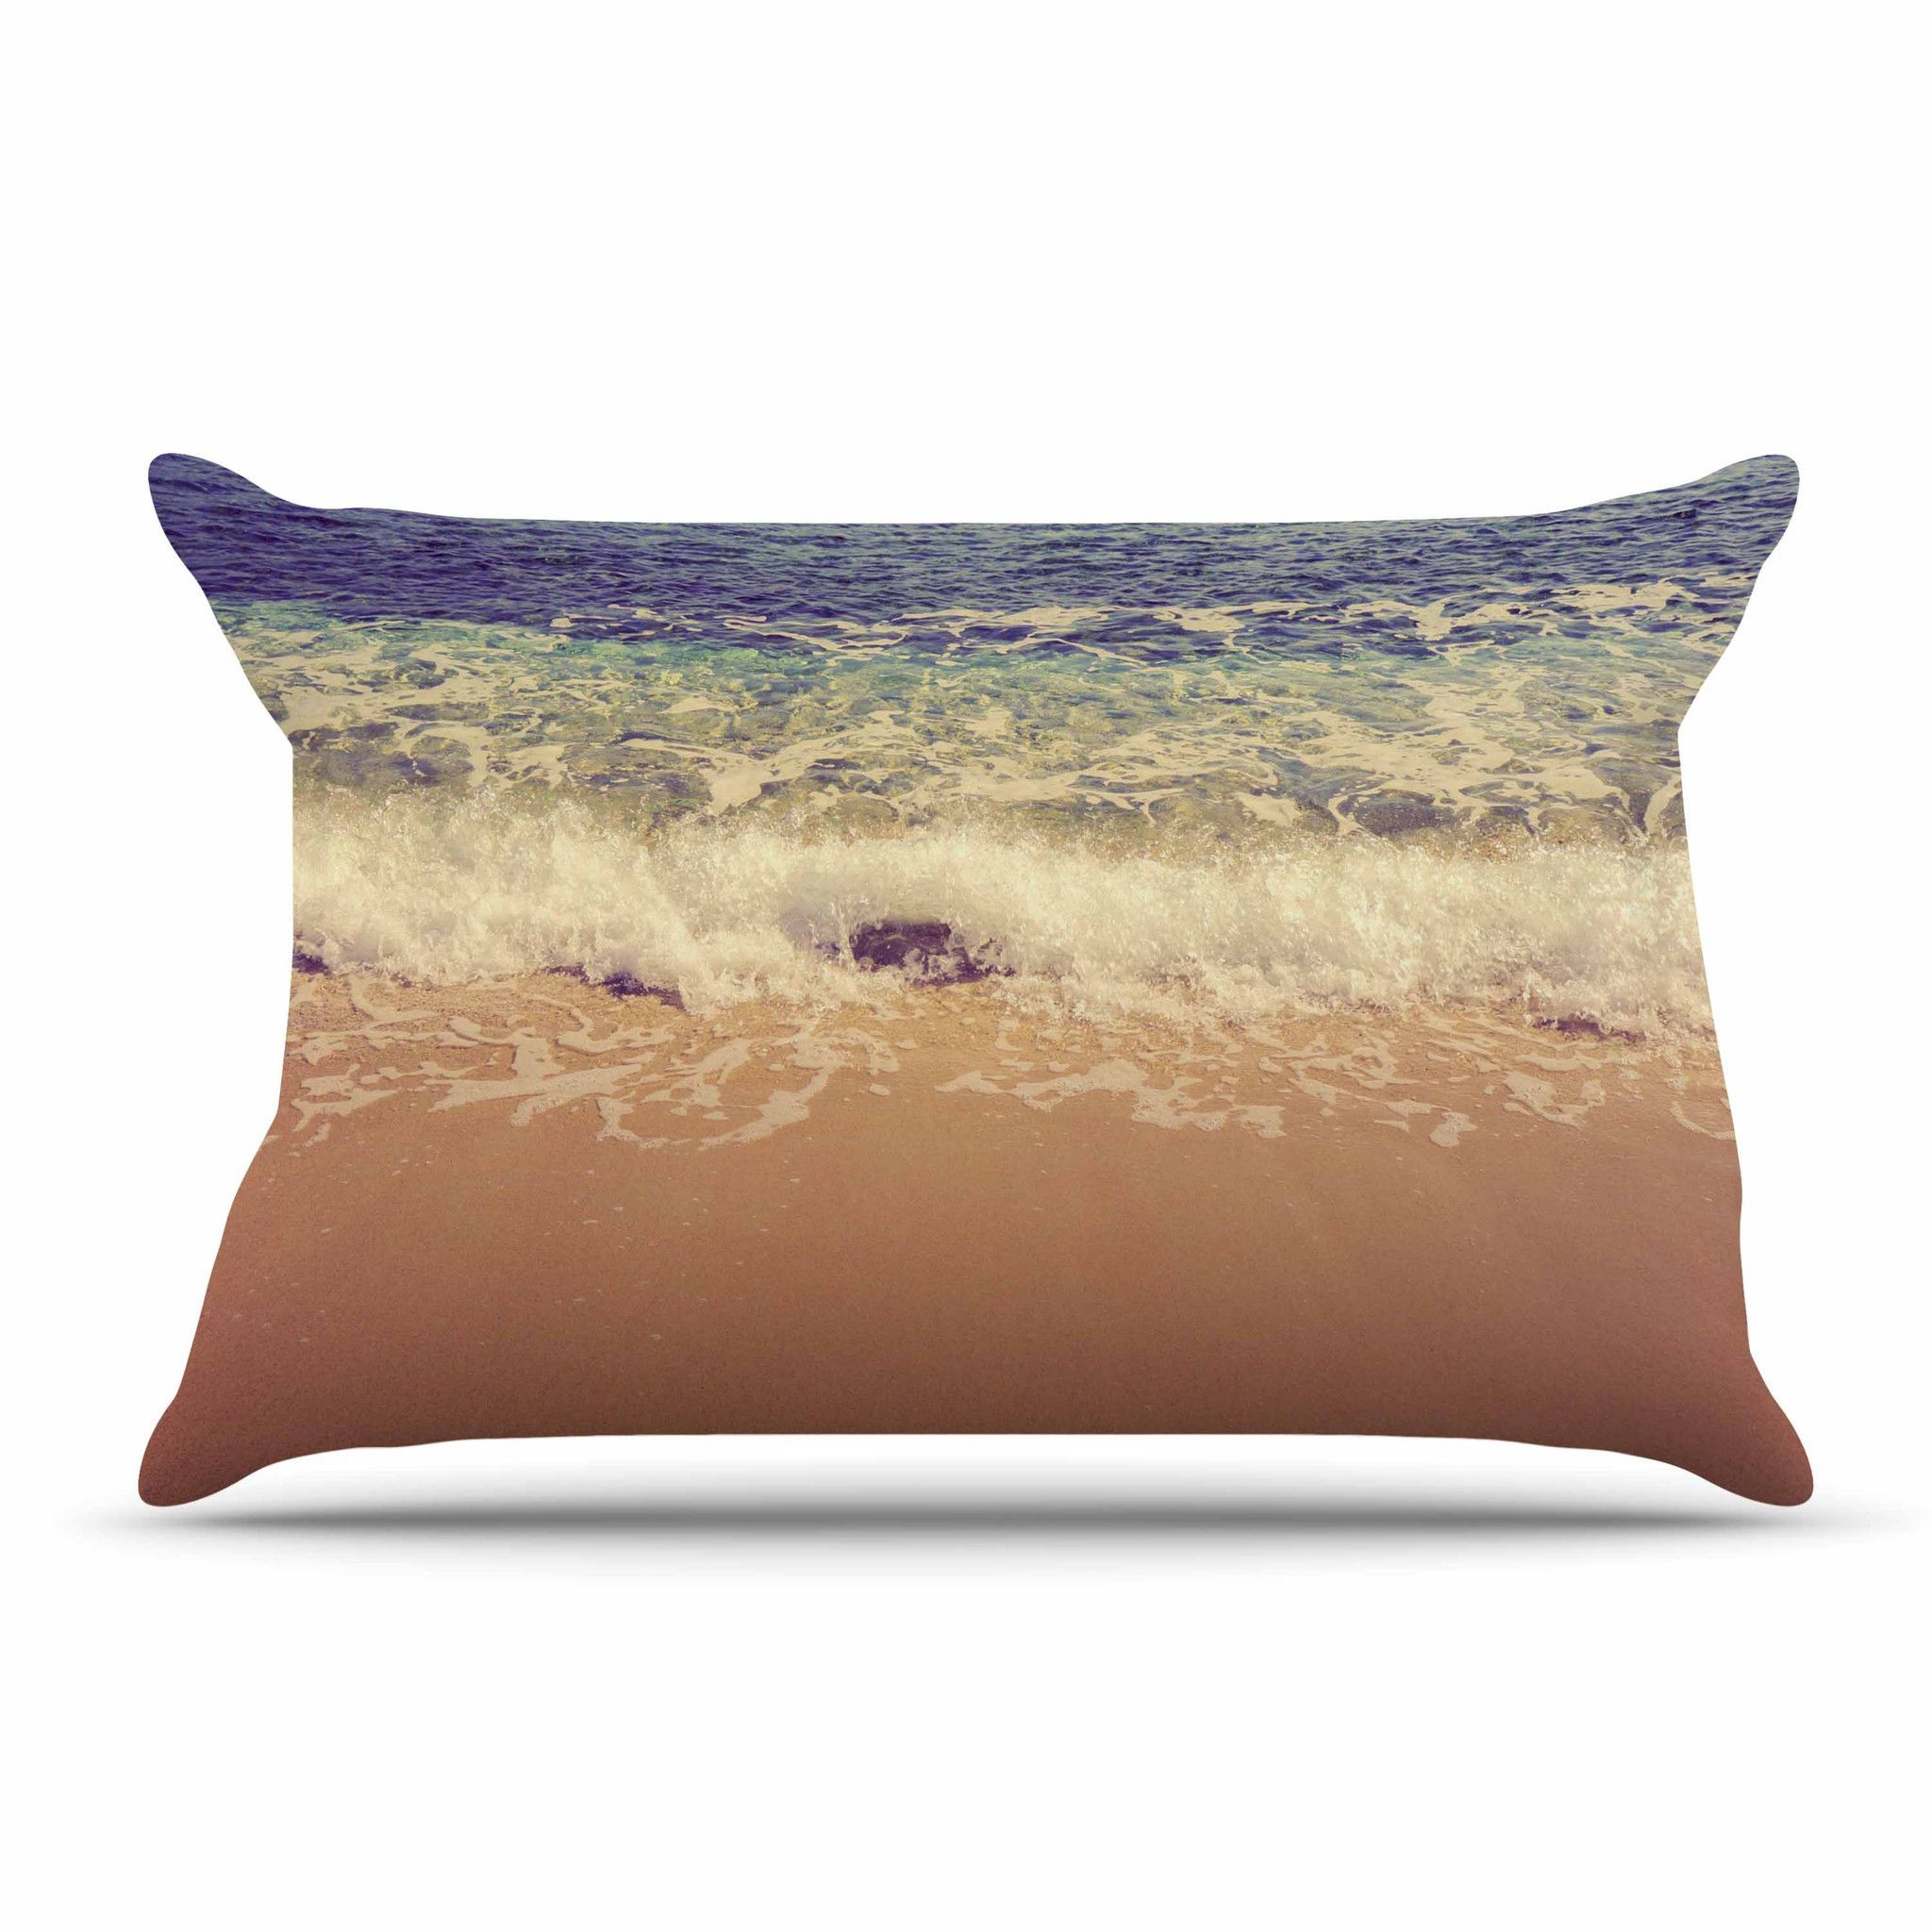 "Violet Hudson ""Crashing Waves"" Beach Coastal Pillow Case"